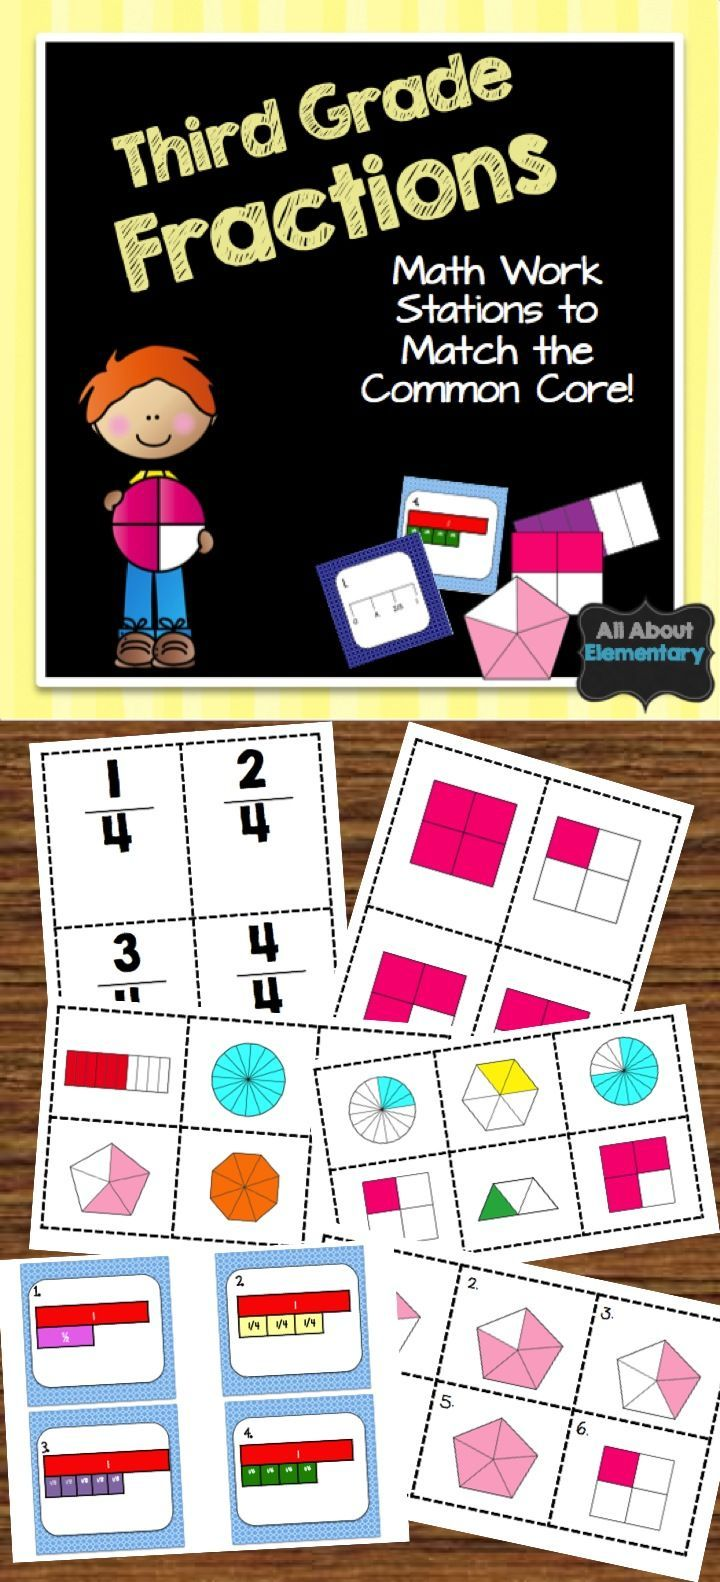 This fraction pack is great for math work stations. It contains games that match the third grade common core standards for number and operations for fractions.